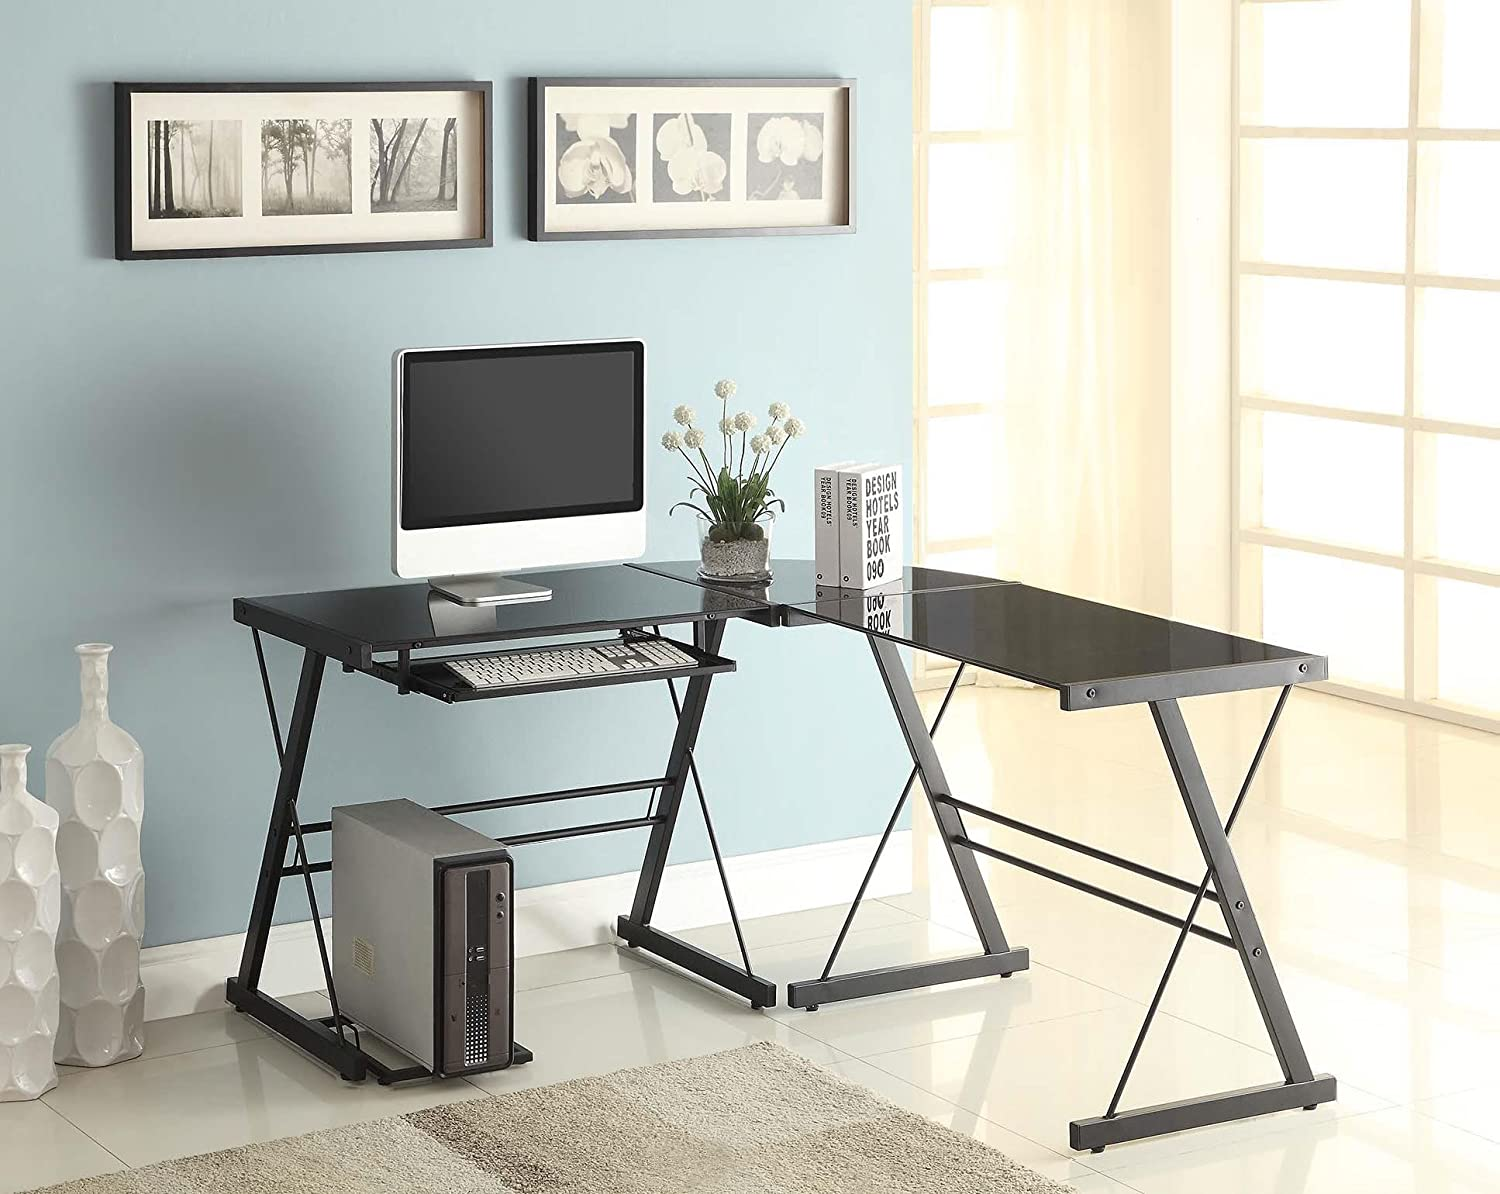 This Naomi Home 3 Piece Sedalia set is one of the best computer gaming desks right now.